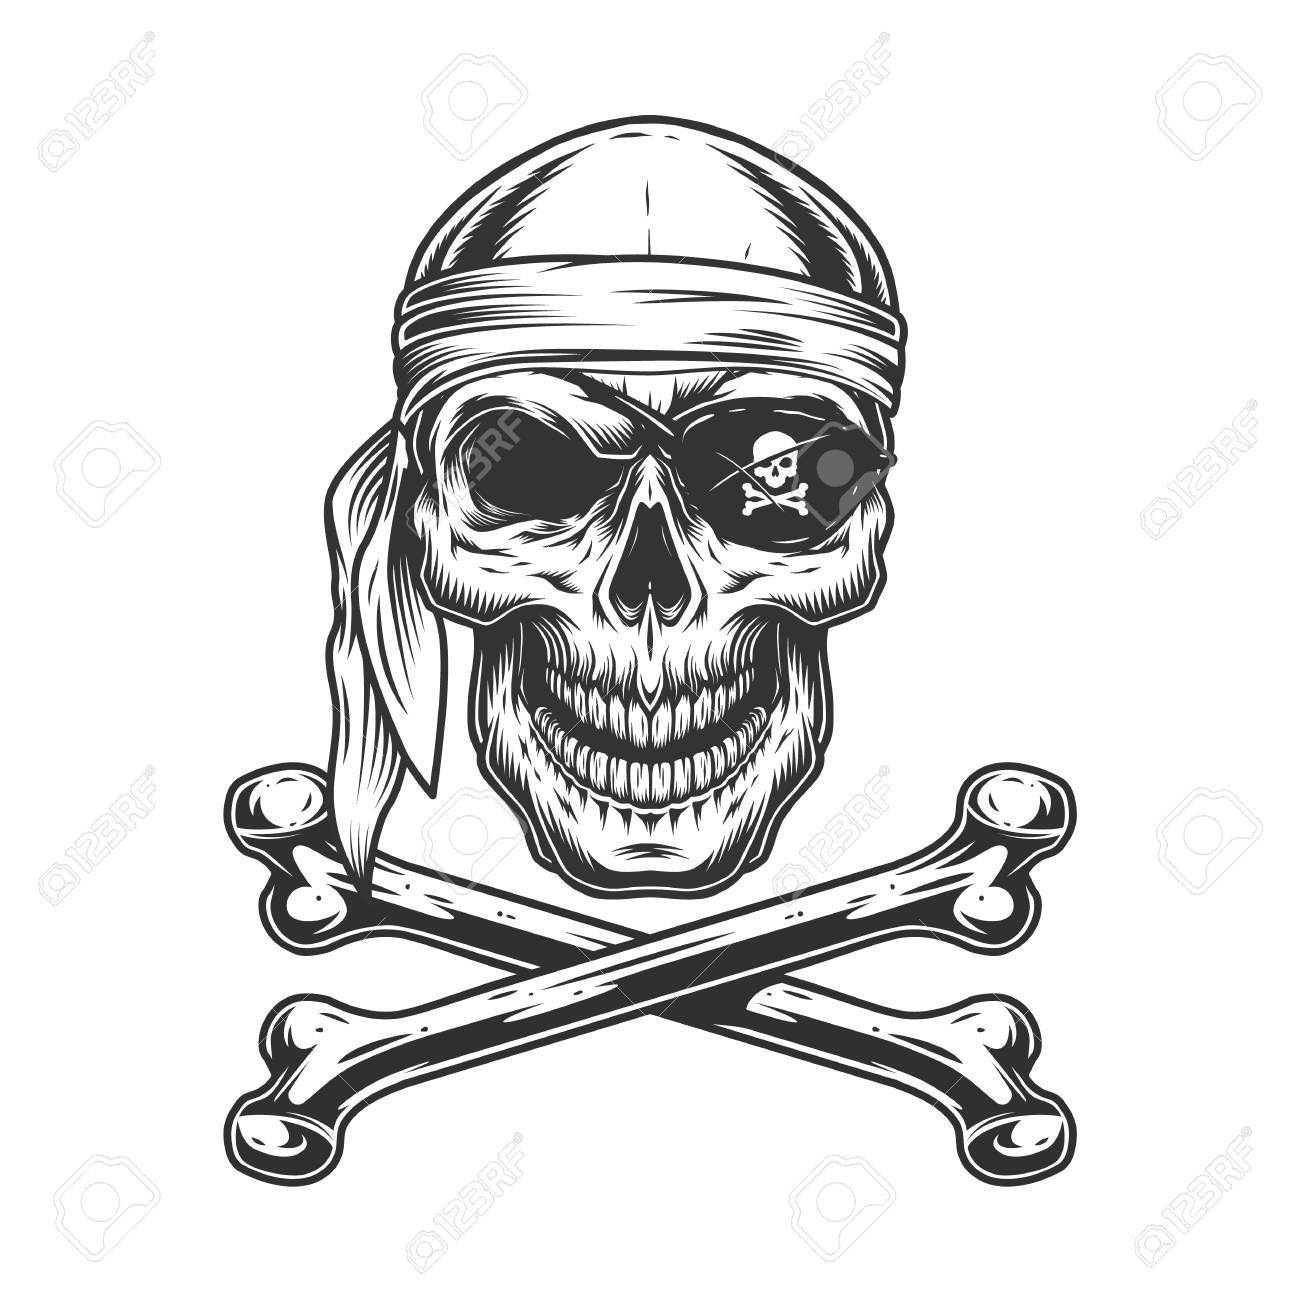 Vintage Monochrome Pirate Skull With Bandana Eye Patch And Crossbones Isolated Vector Illustration Ad Skull Skull Illustration Simple Skull Pirate Skull